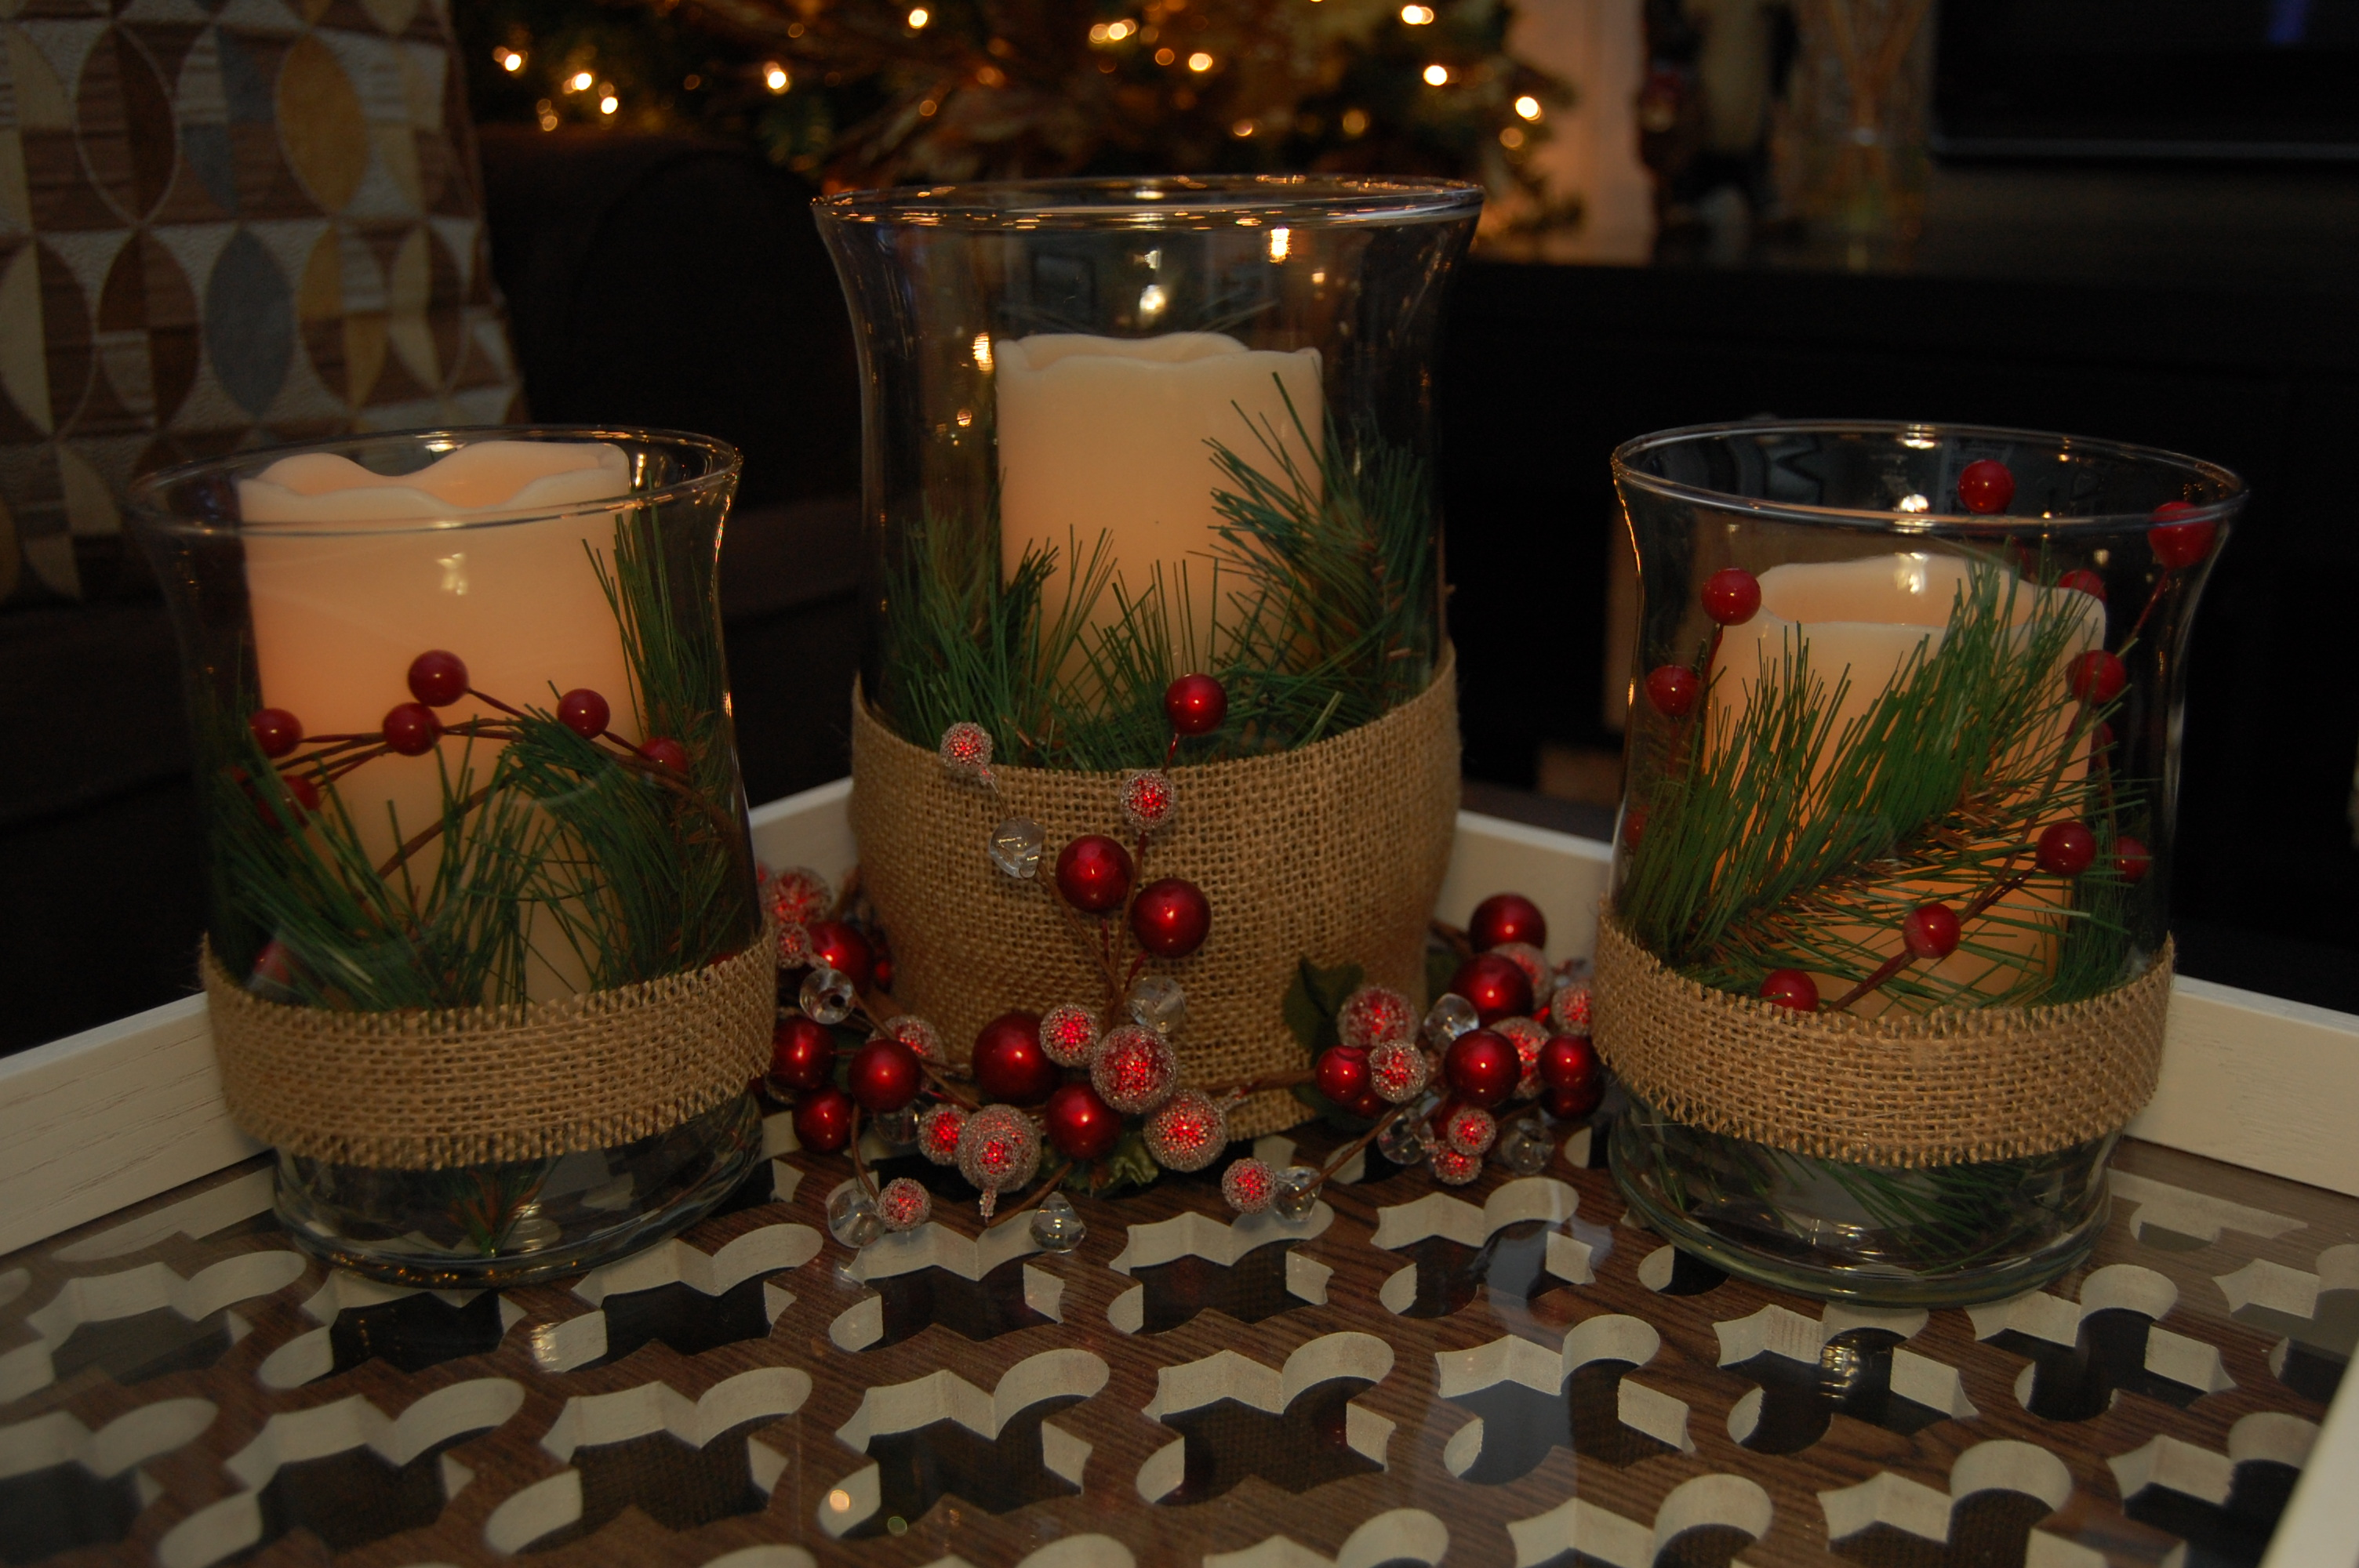 Home Made Center Pieces For Kitchen Table For Christmas